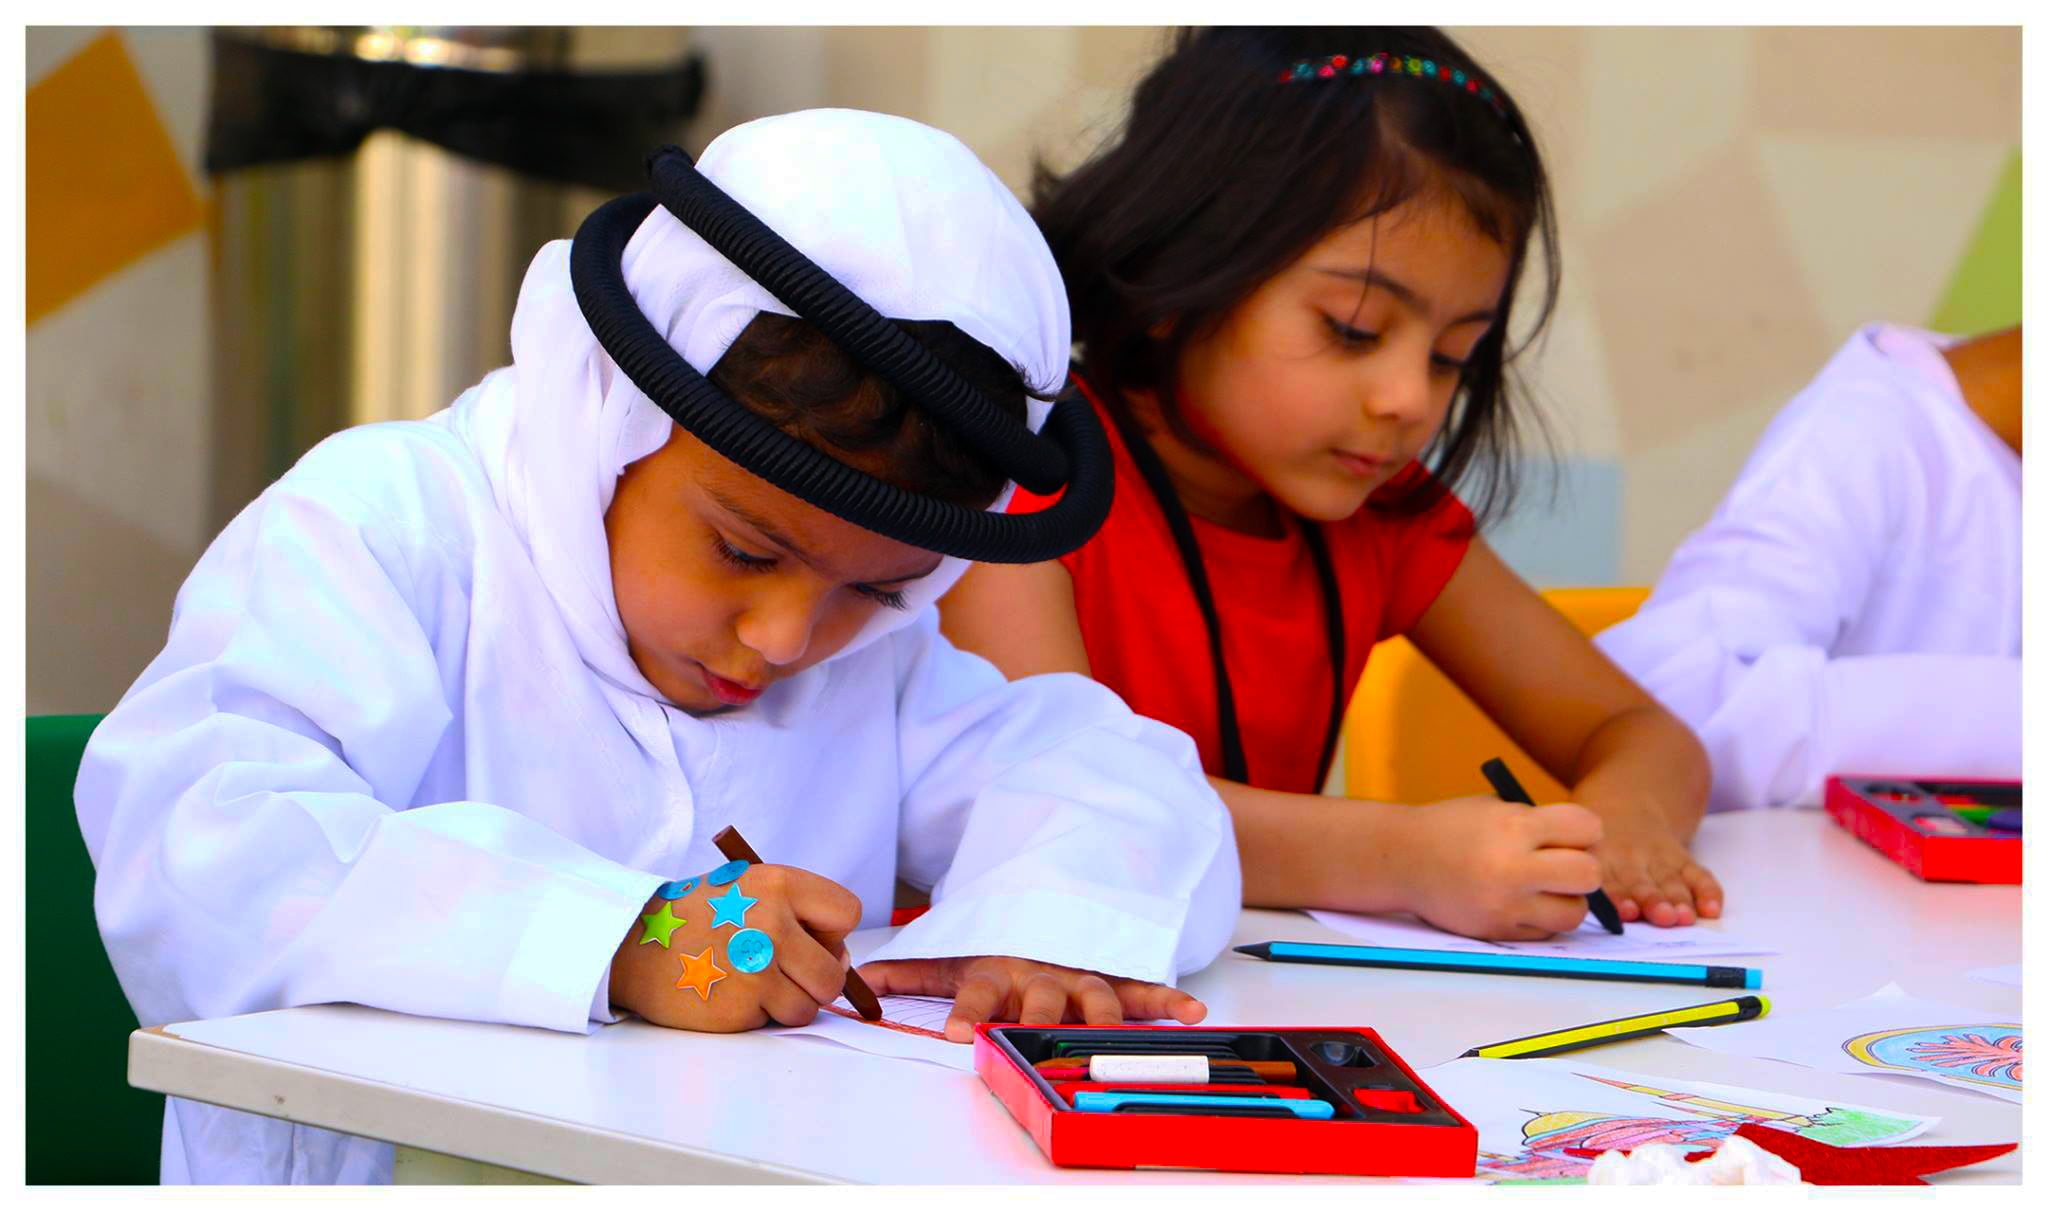 Photograph of children at the Ambassador Kindergarten and Nursery in Dubai engaged in art-based learning to develop creativity and fine motoring skills